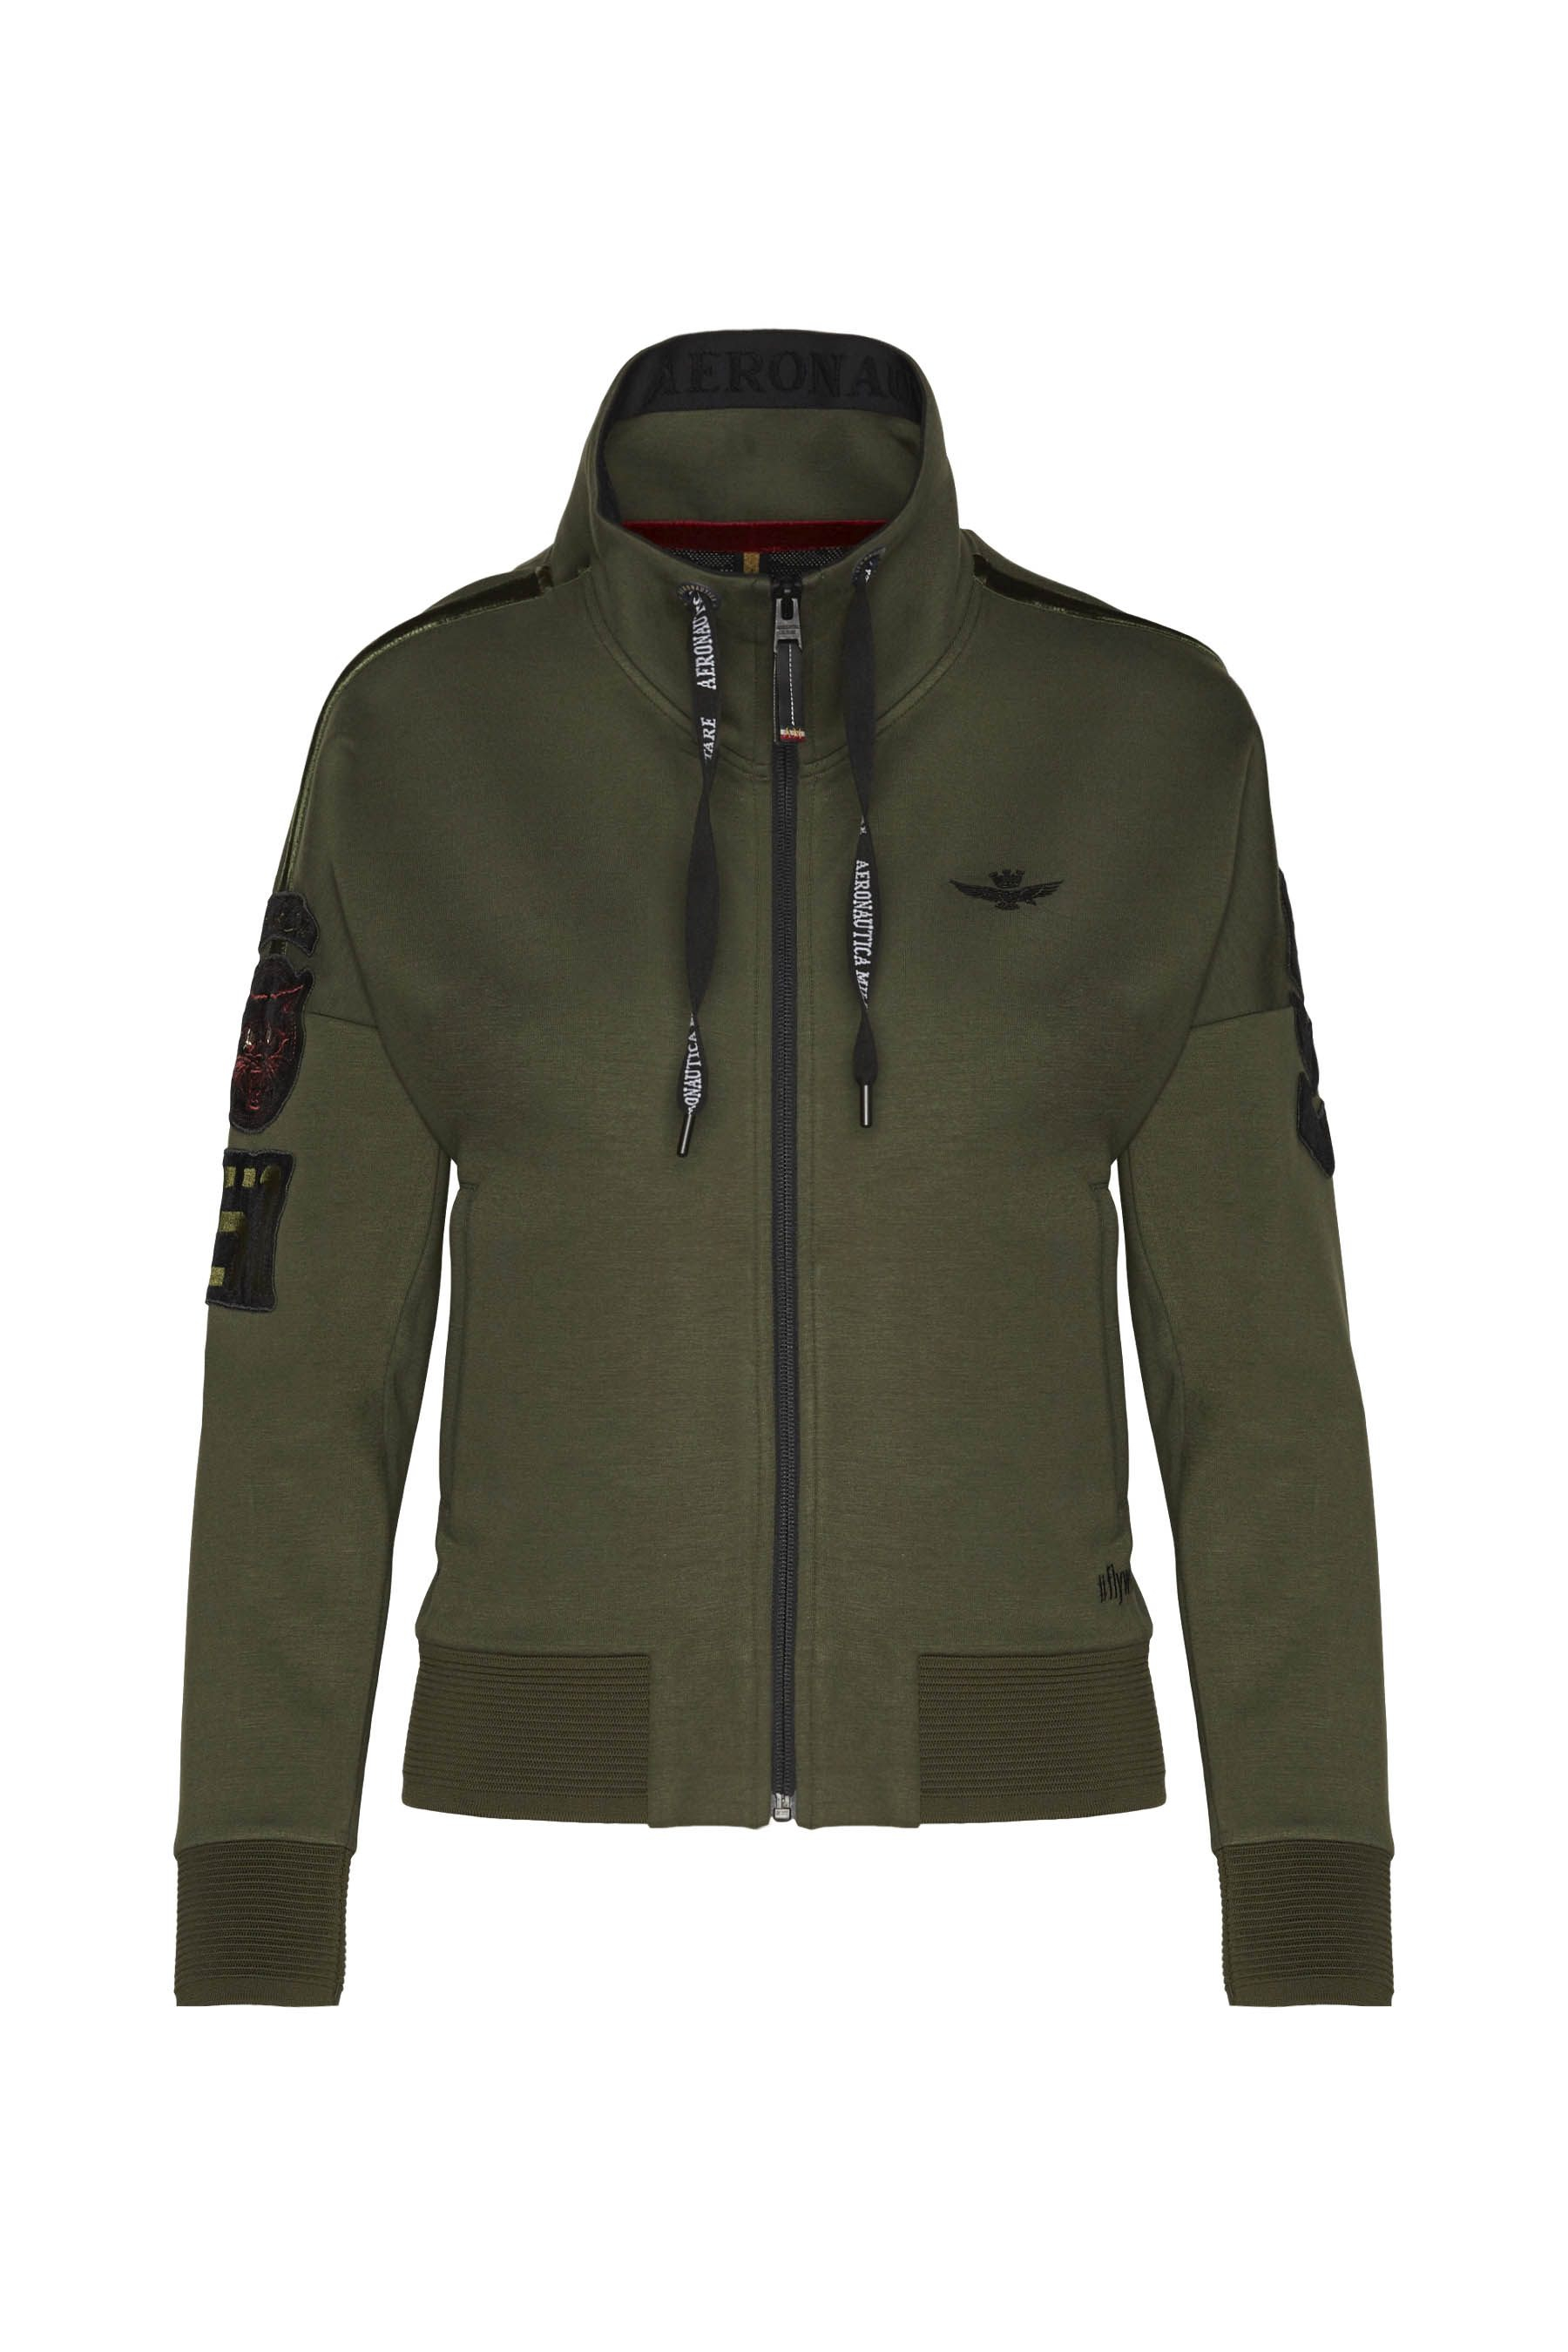 FE1552 - FELPA FULL ZIP 1